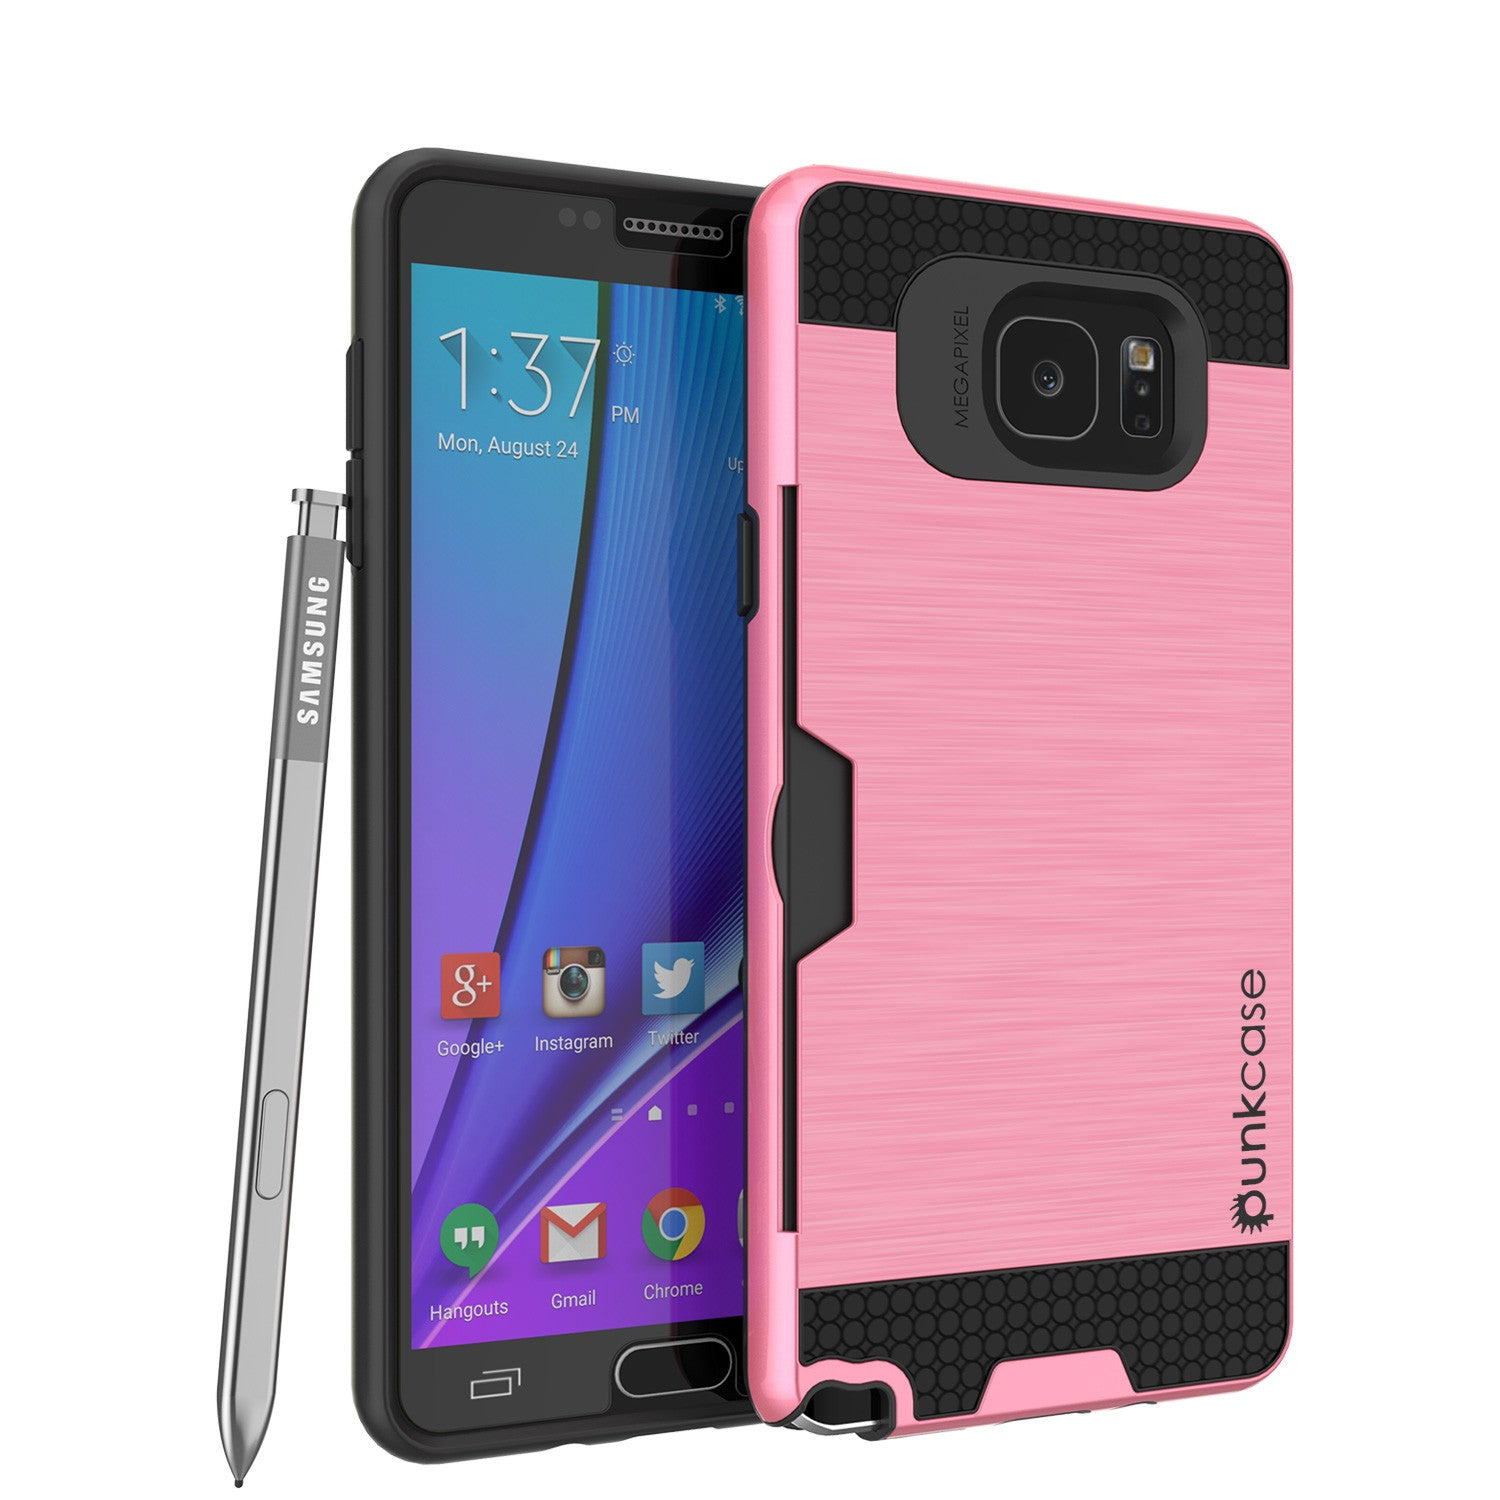 Galaxy Note 5 Case PunkCase SLOT Pink Series Slim Armor Soft Cover Case w/ Tempered Glass